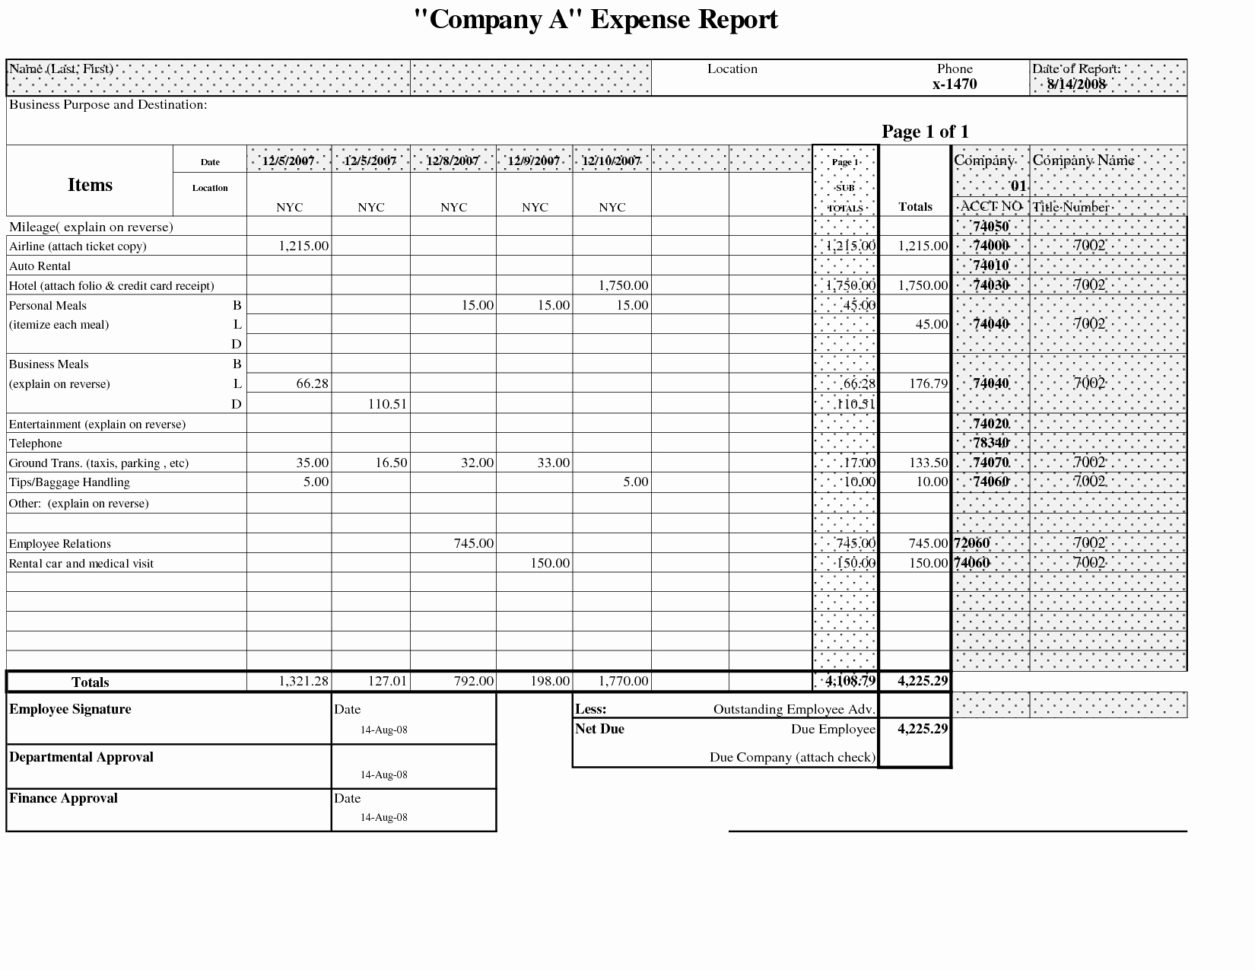 Travel Spreadsheet Excel Templates Elegant Travel Spreadsheet Excel To Business Trip Expense Template